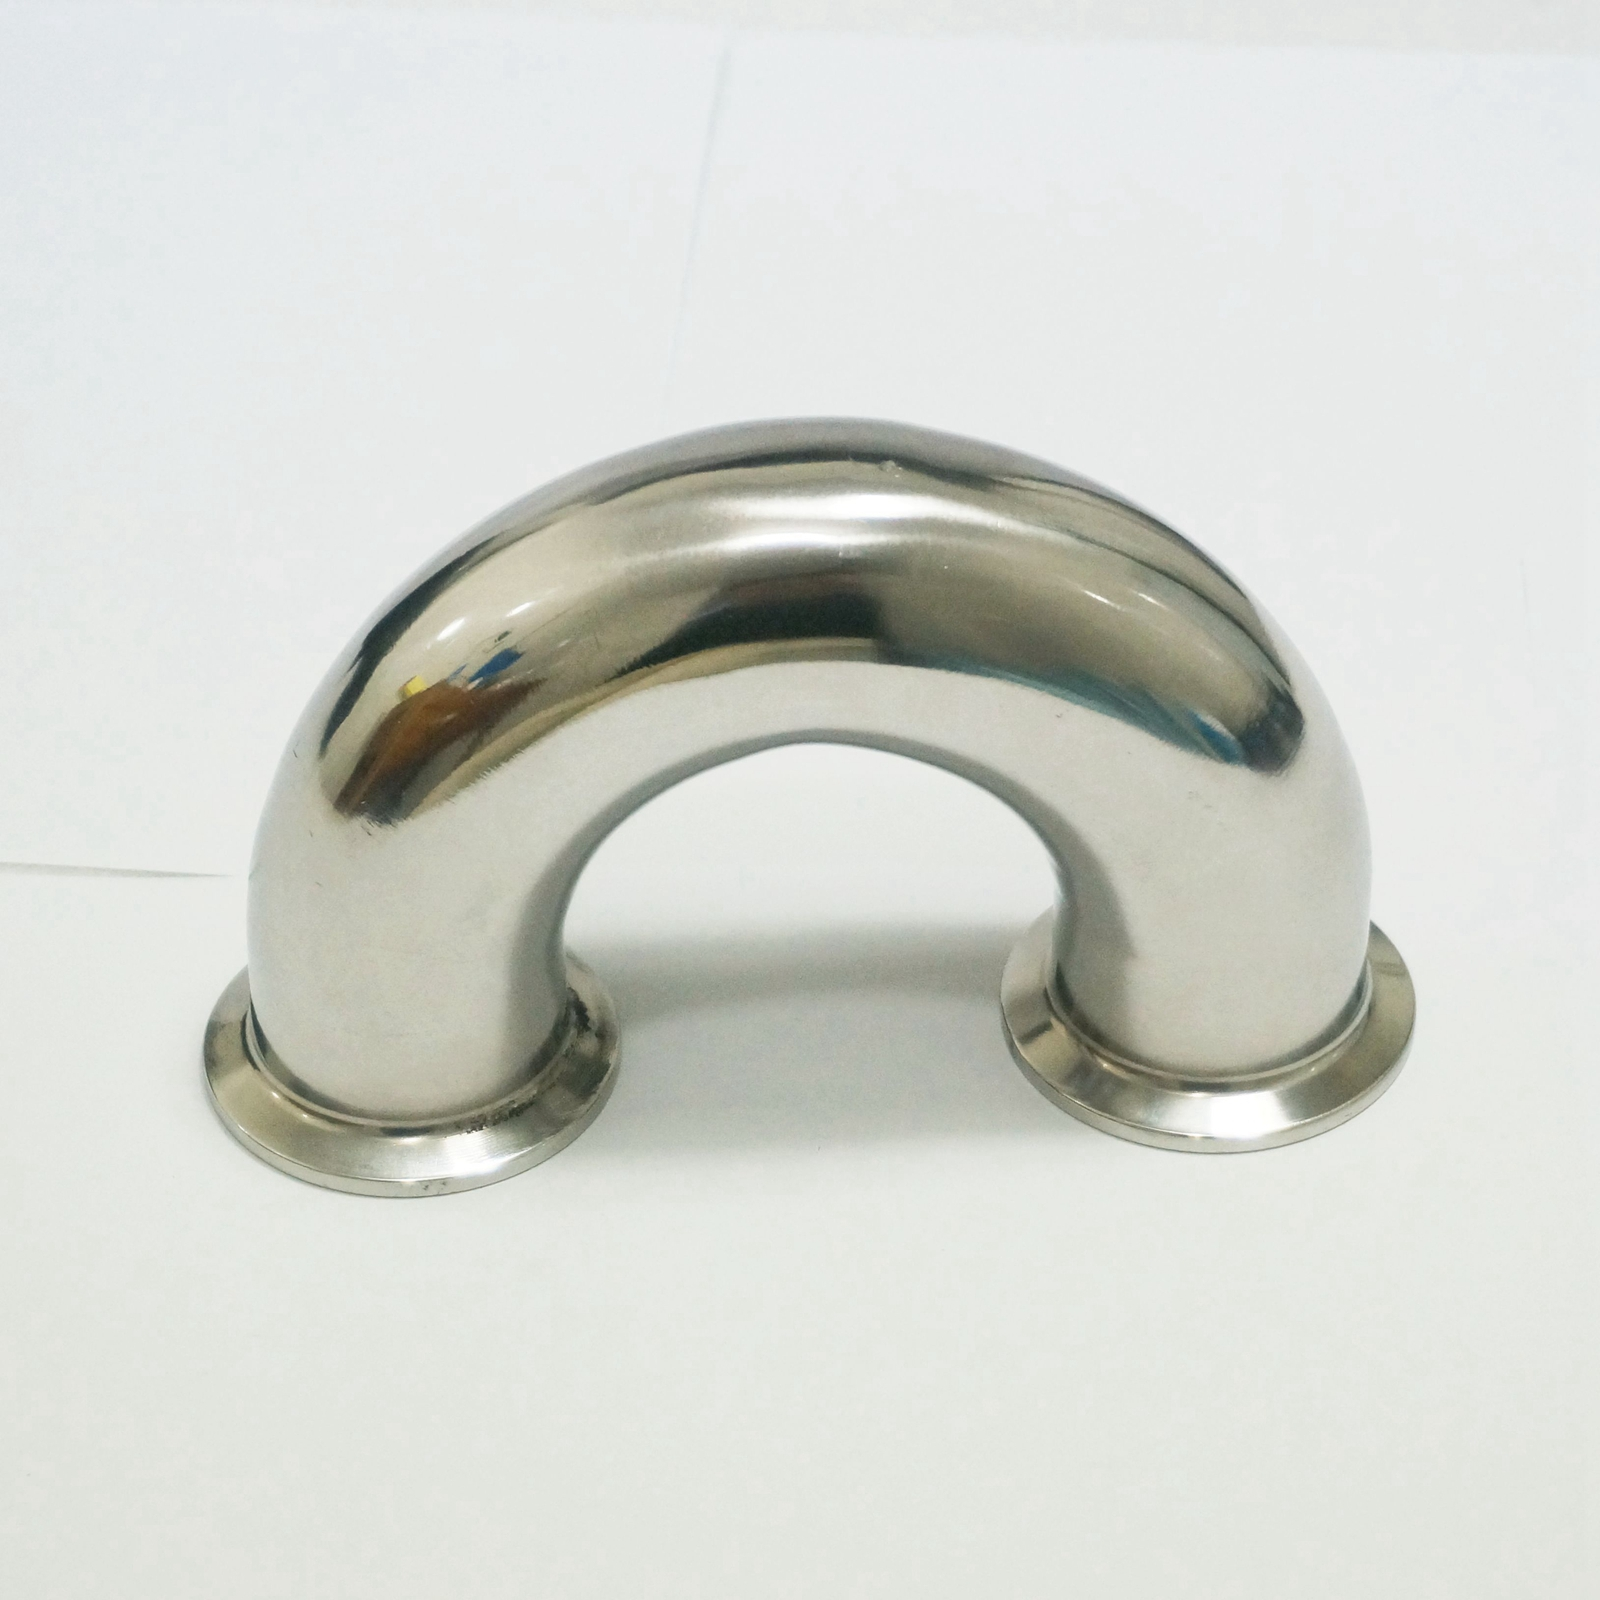 38mm O/D 1.5 Tri Clamp 304 Stainless Steel Sanitary 180 Degree Return Bend Three Clover Pipe Fitting  For Homebrew